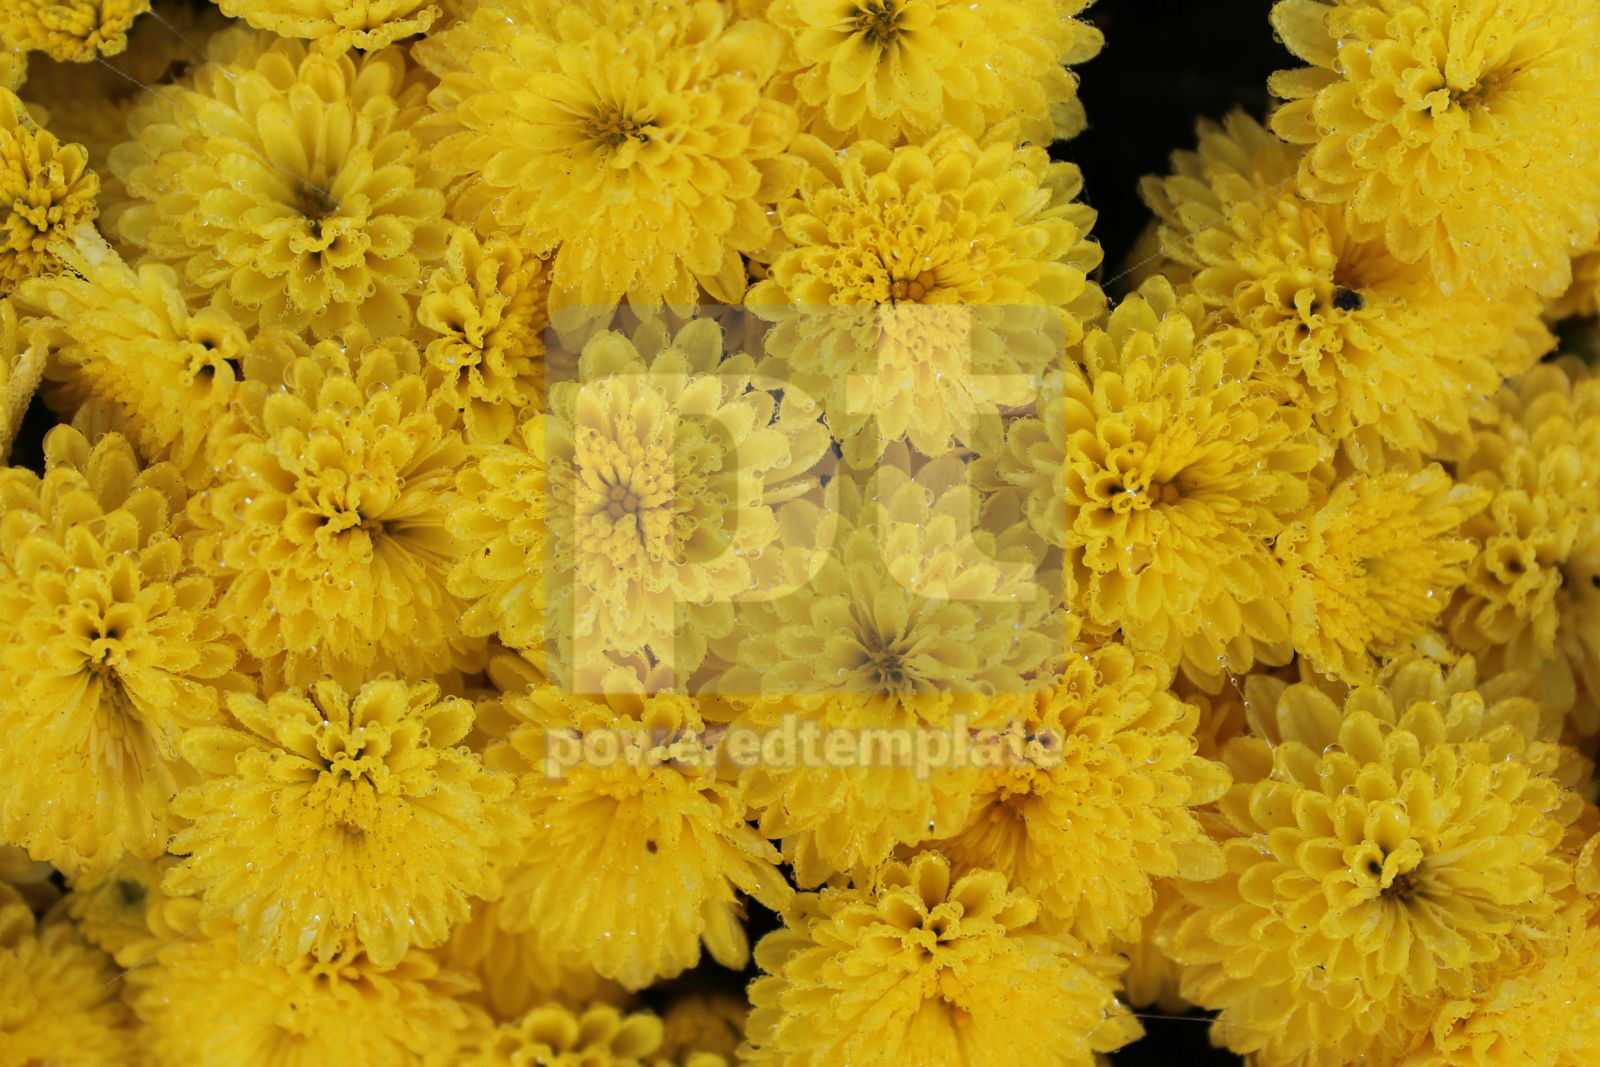 Autumn background with bright yellow flowers Close-up image of yellow chrysanthemums, 16411, Nature — PoweredTemplate.com